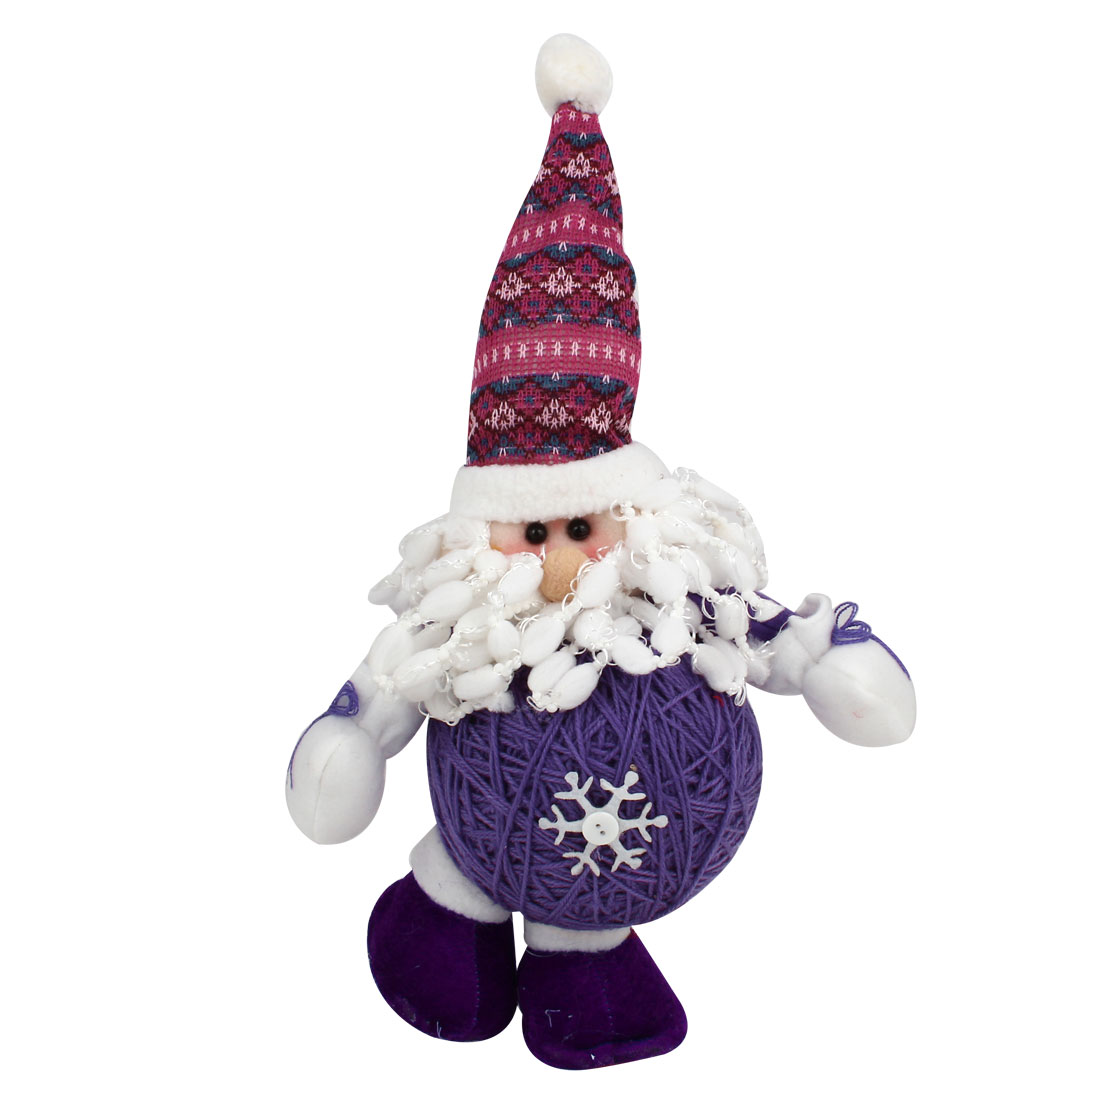 Santa Claus Shape Christmas Toy Doll Gift Purple White for Xmas Trees Ornament